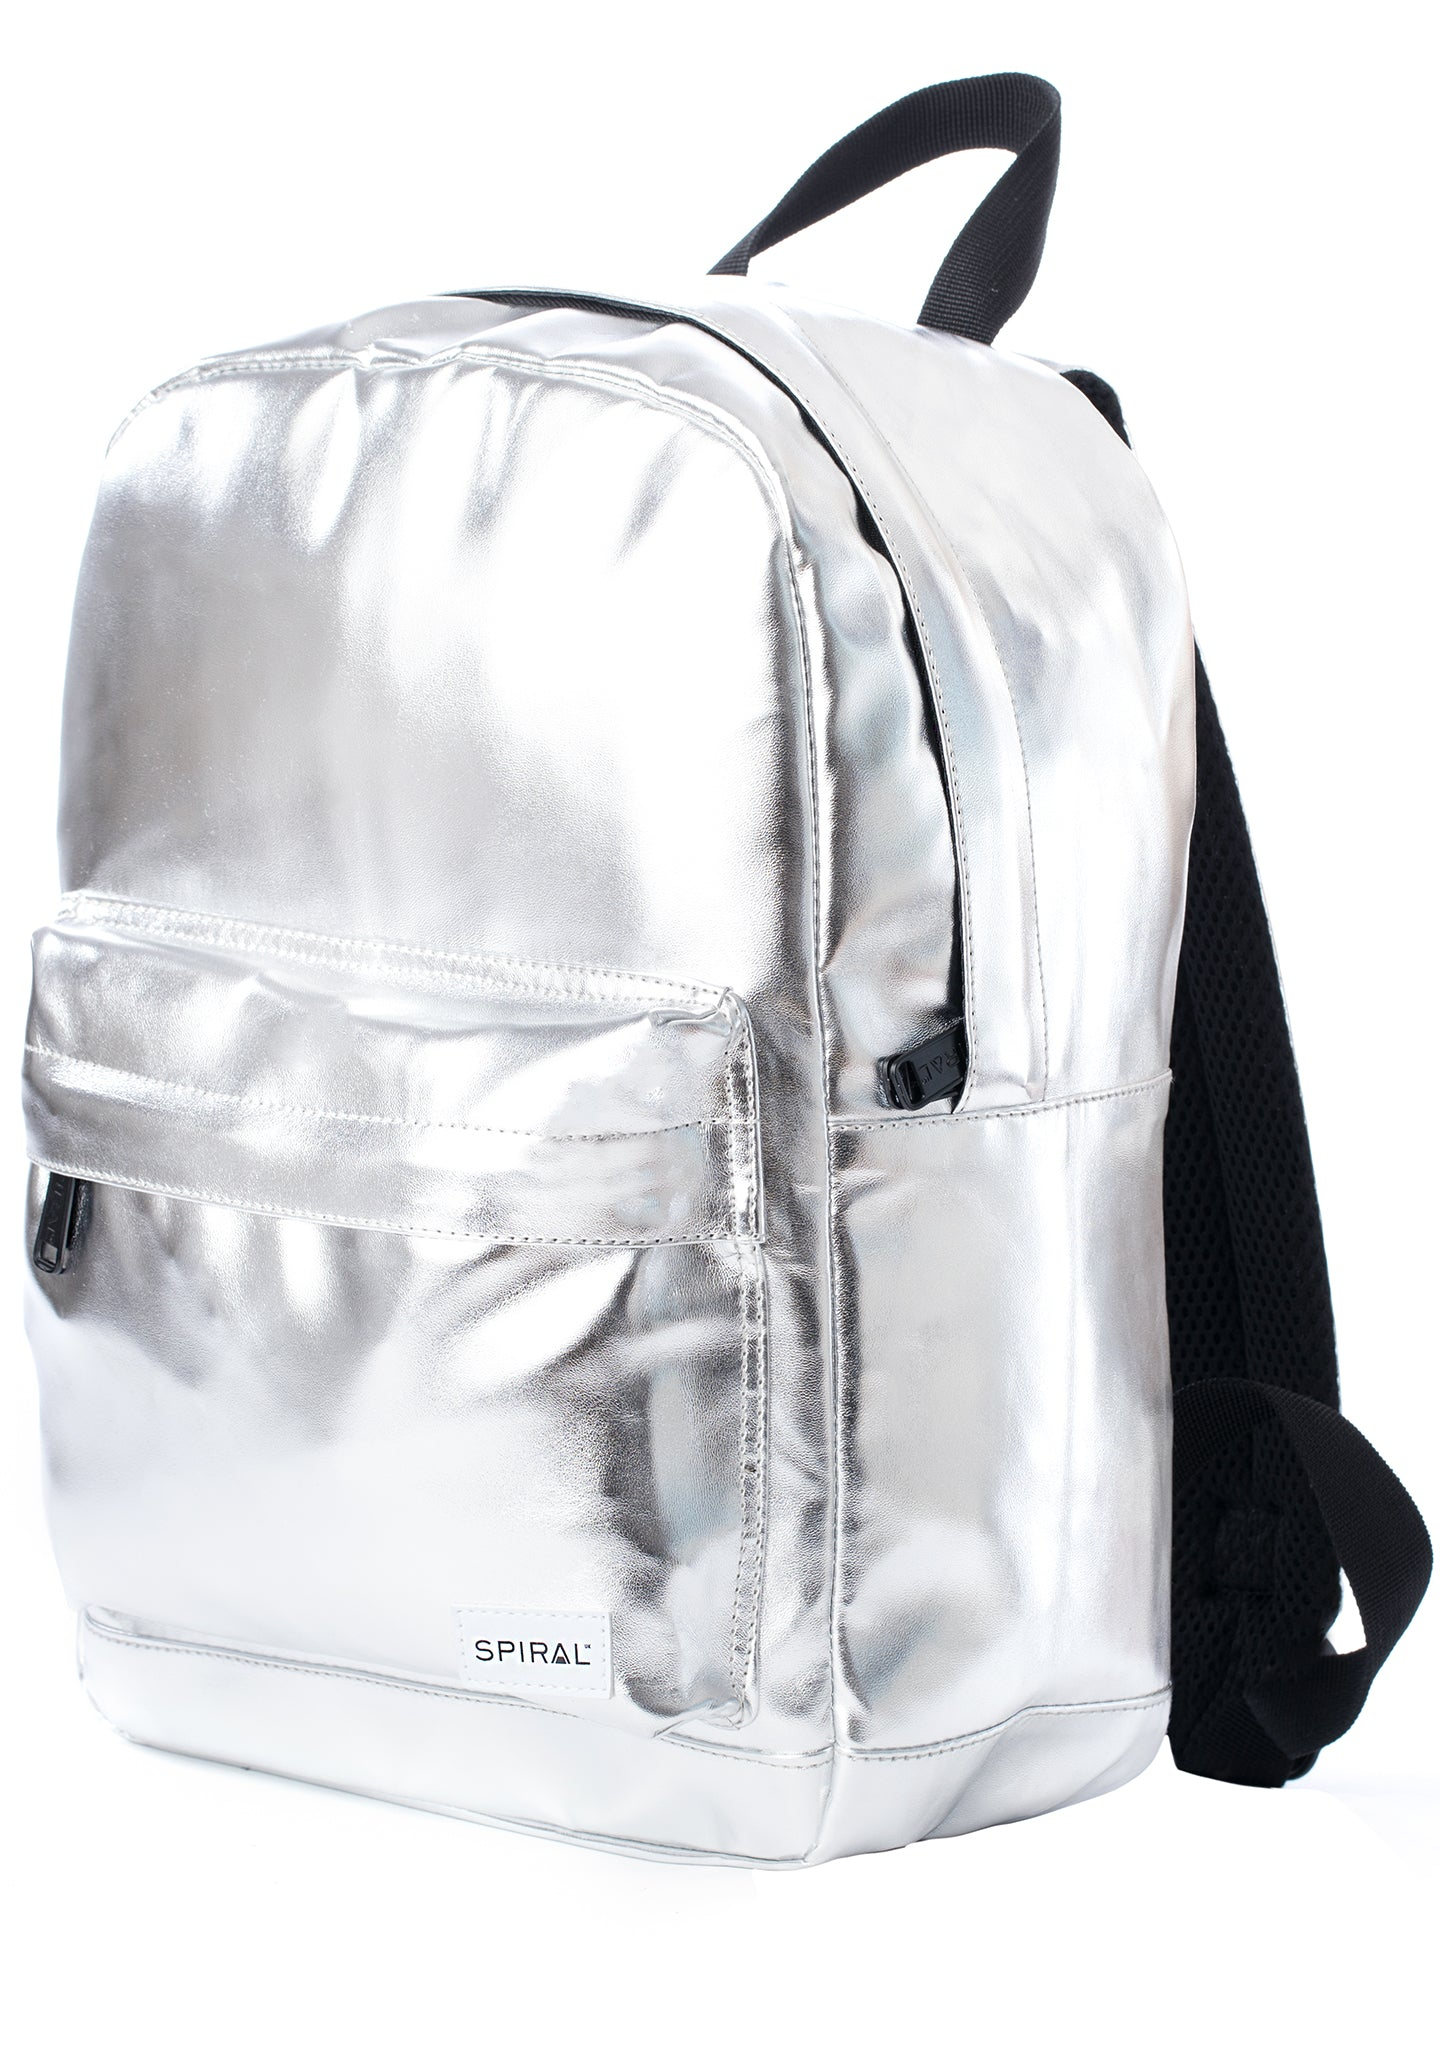 Steel Eclipse Festival Backpack in Metallic Silver